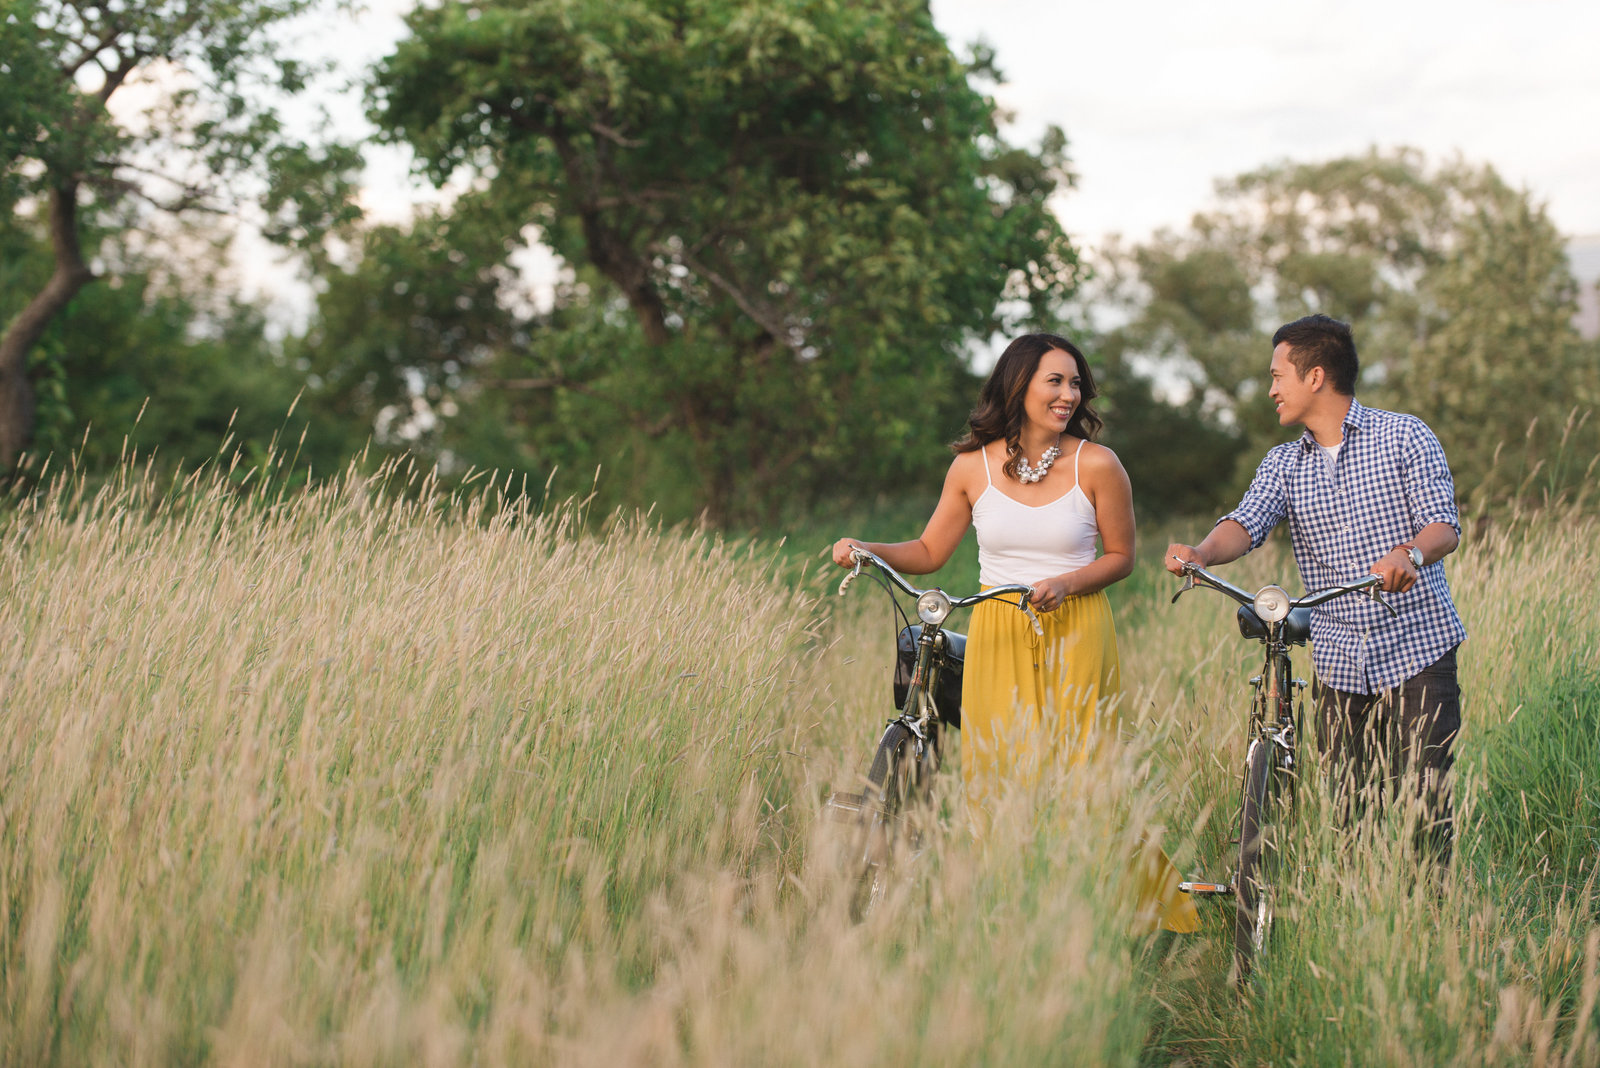 couple walking in the tall grass with raleigh vintage bicycles